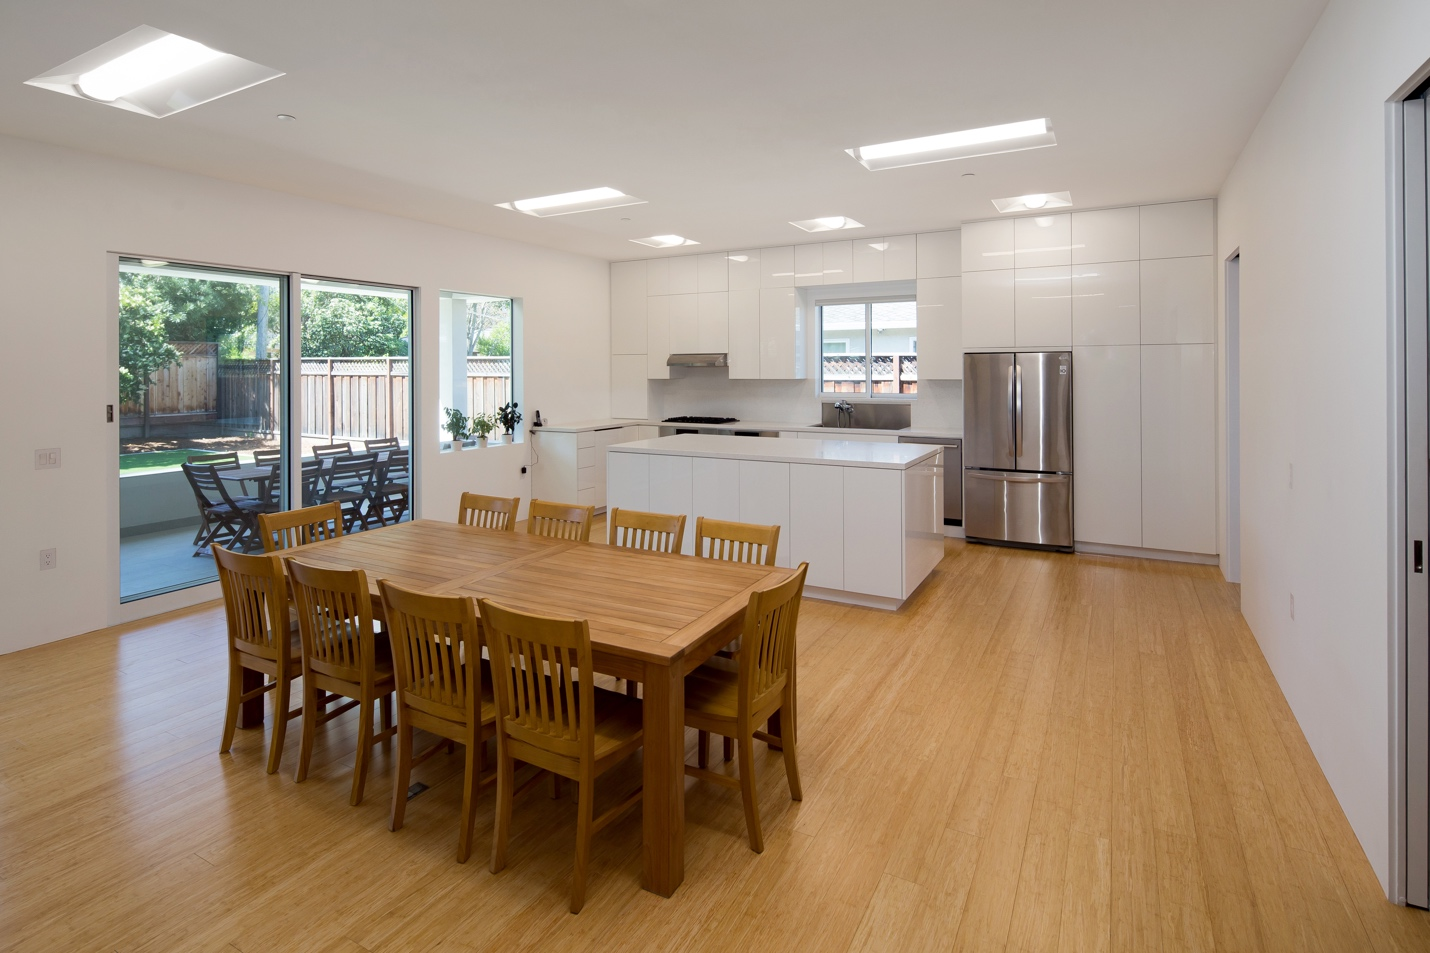 Kitchen with dining room, Modern Architect design, interior design work, Los Altos